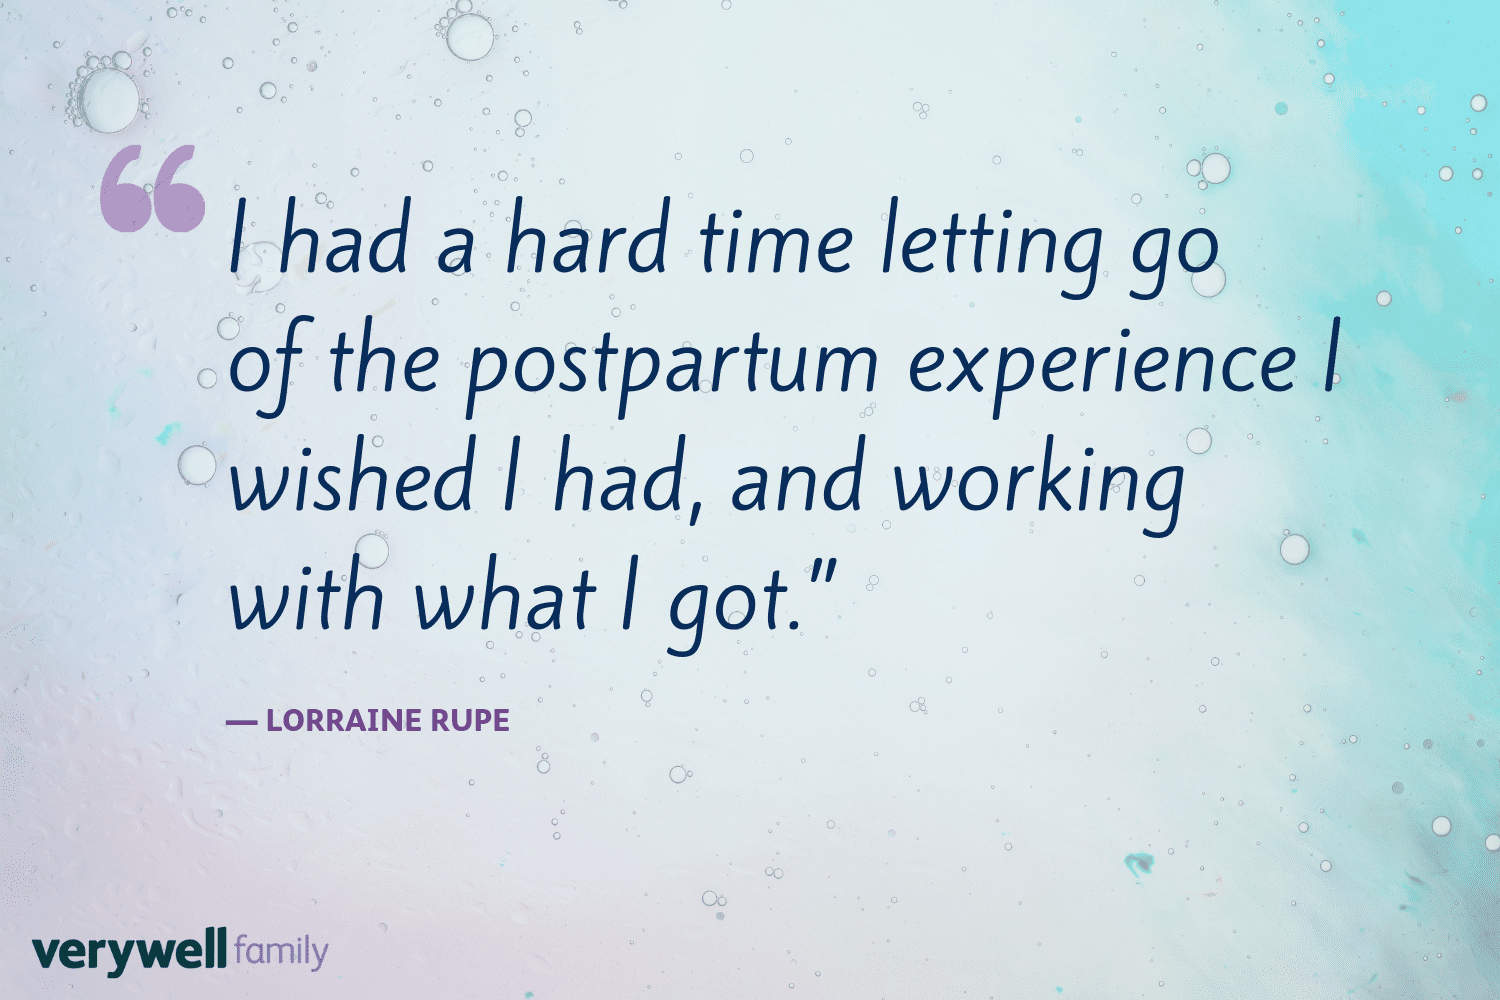 Verywell Family postpartum quote by Lorraine Rupe